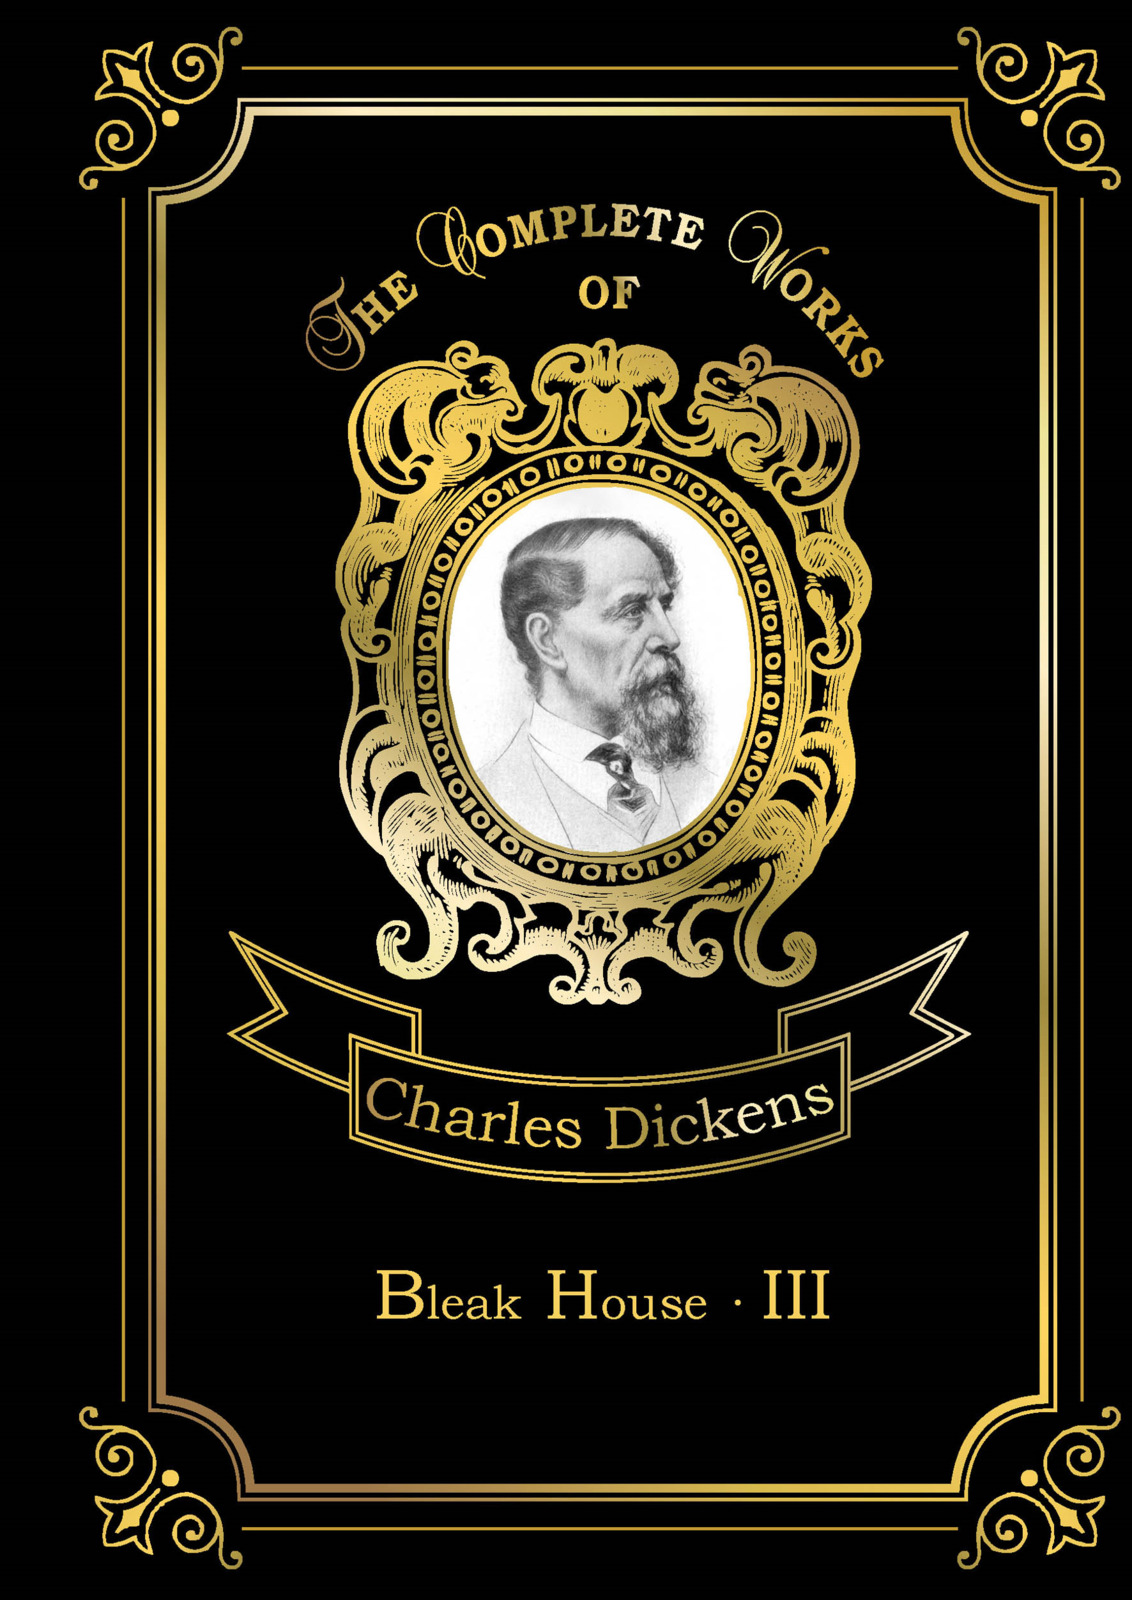 Charles Dickens Bleak House III bleak bleak burns inside